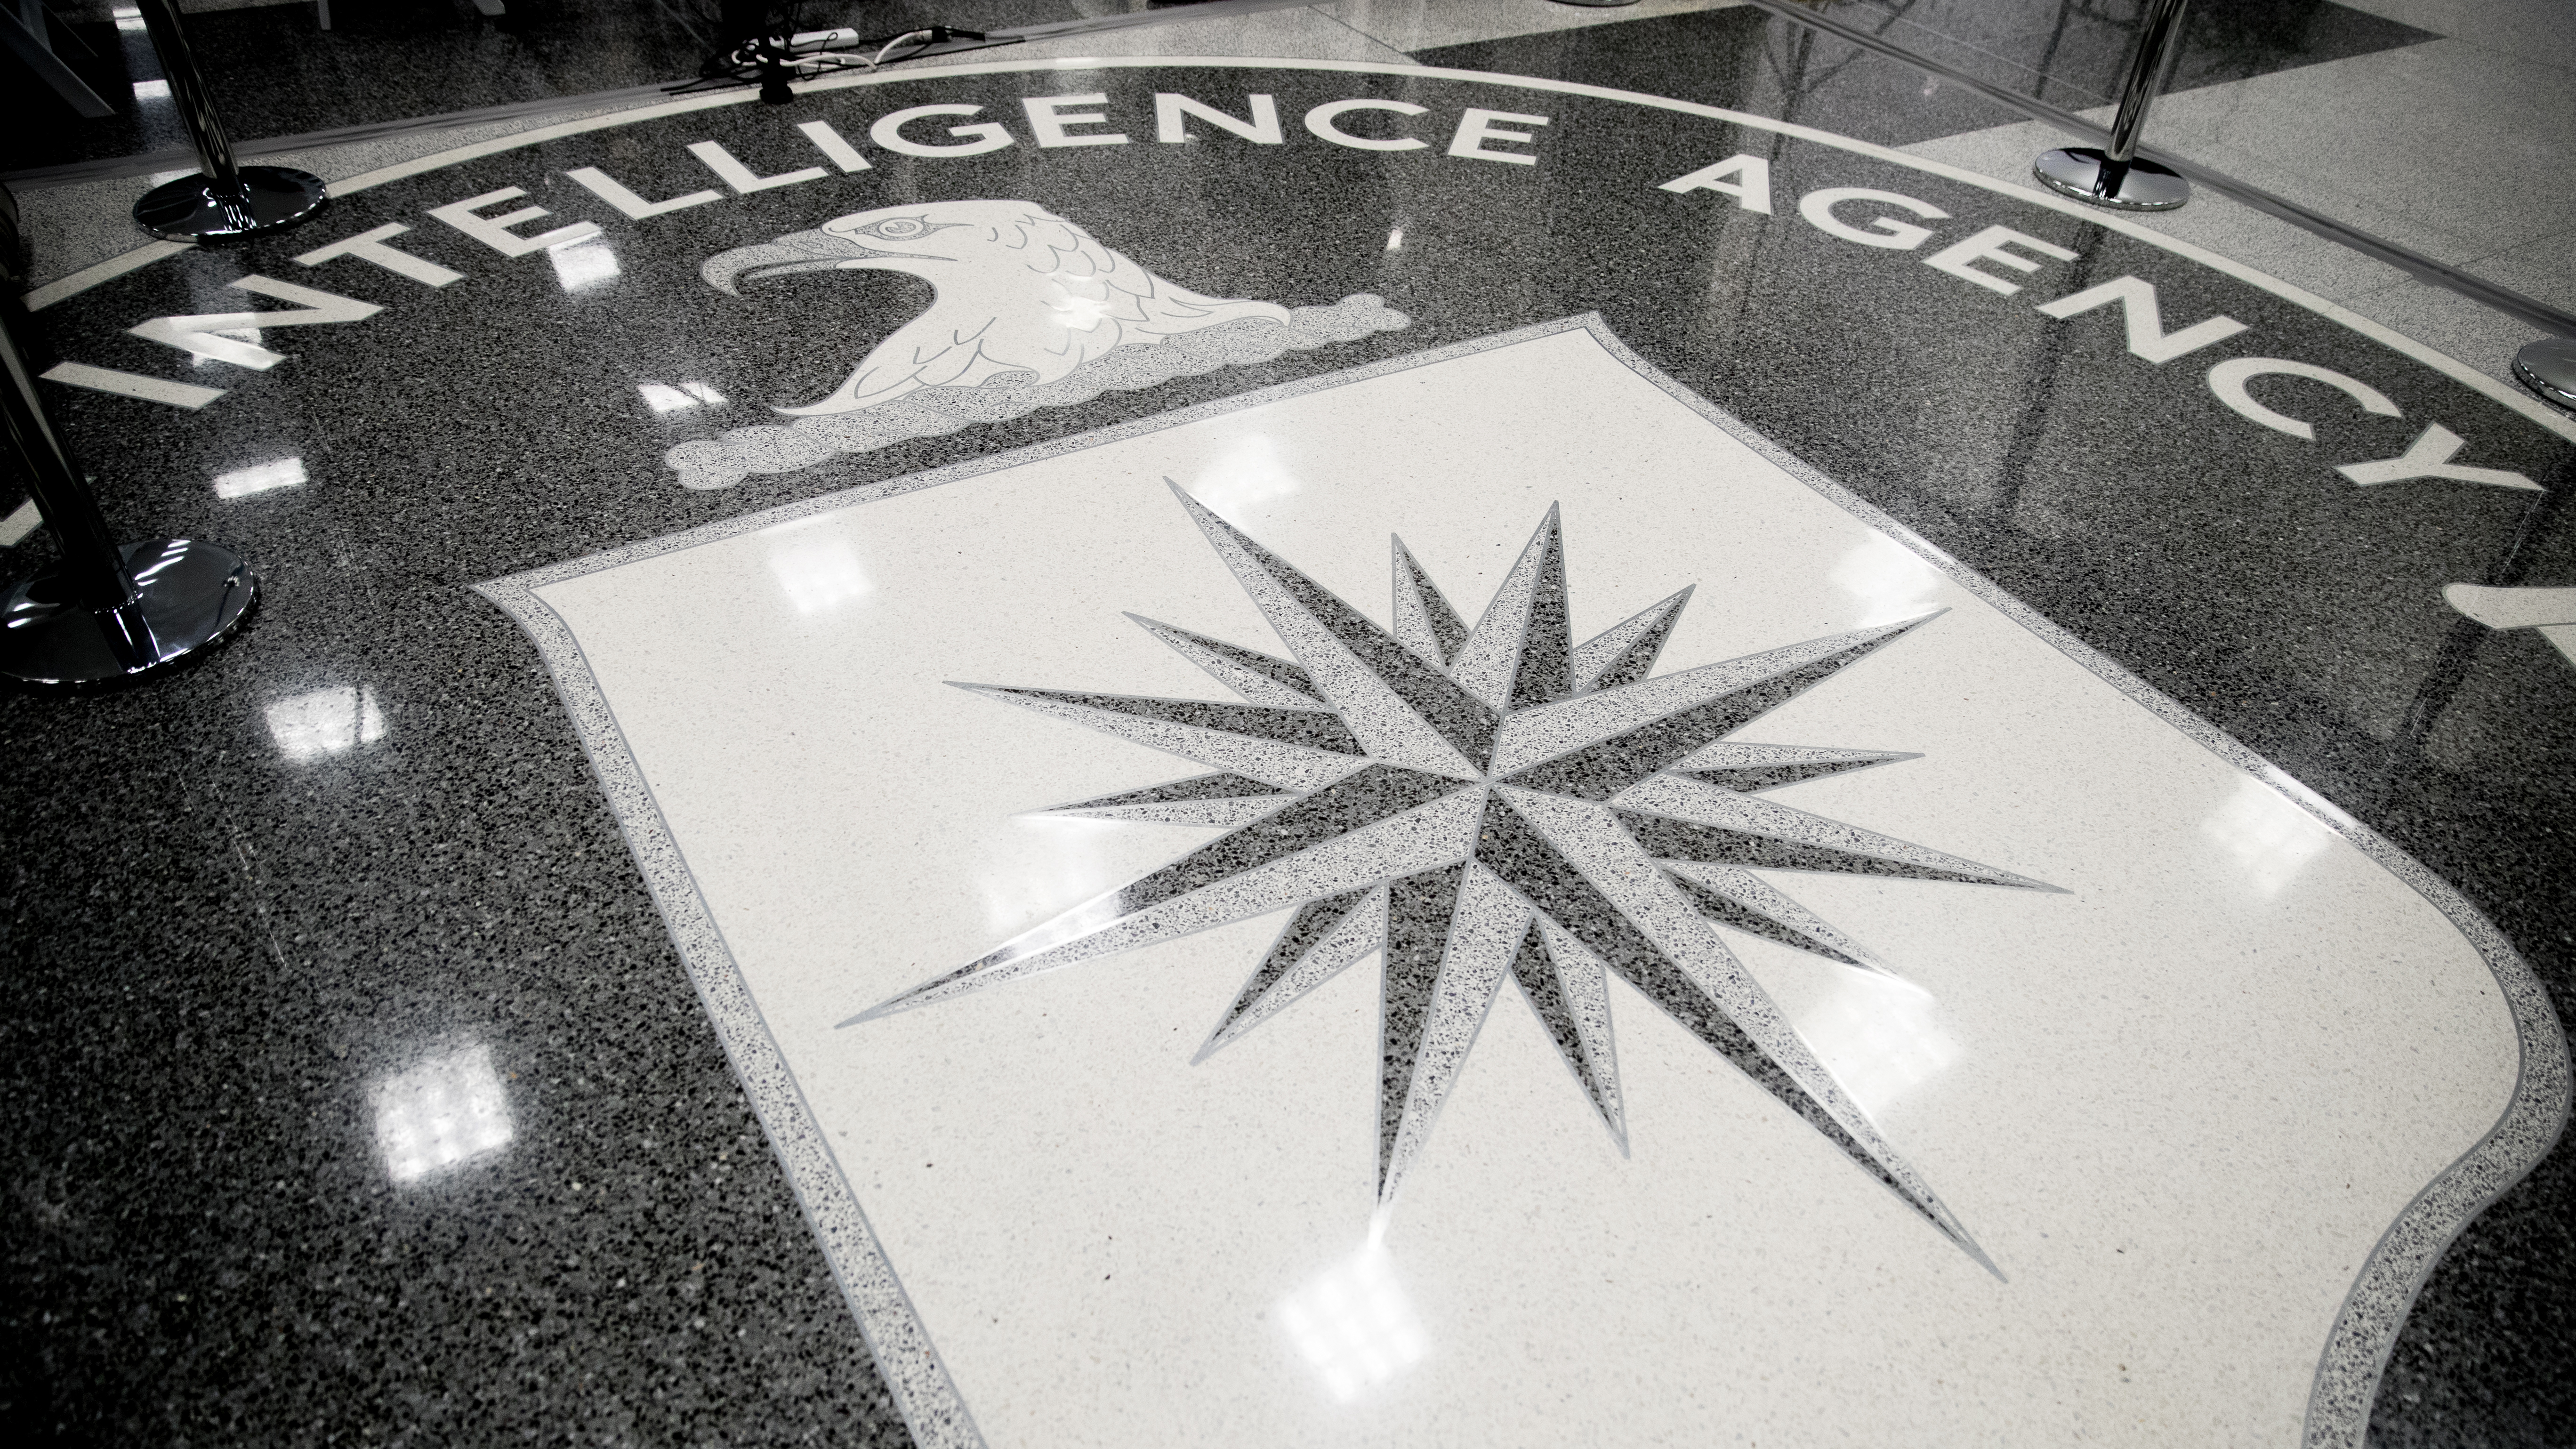 The floor of the main lobby of the Central Intelligence Agency in Langley, Va., Saturday, Jan. 21, 2017. (AP Photo/Andrew Harnik)